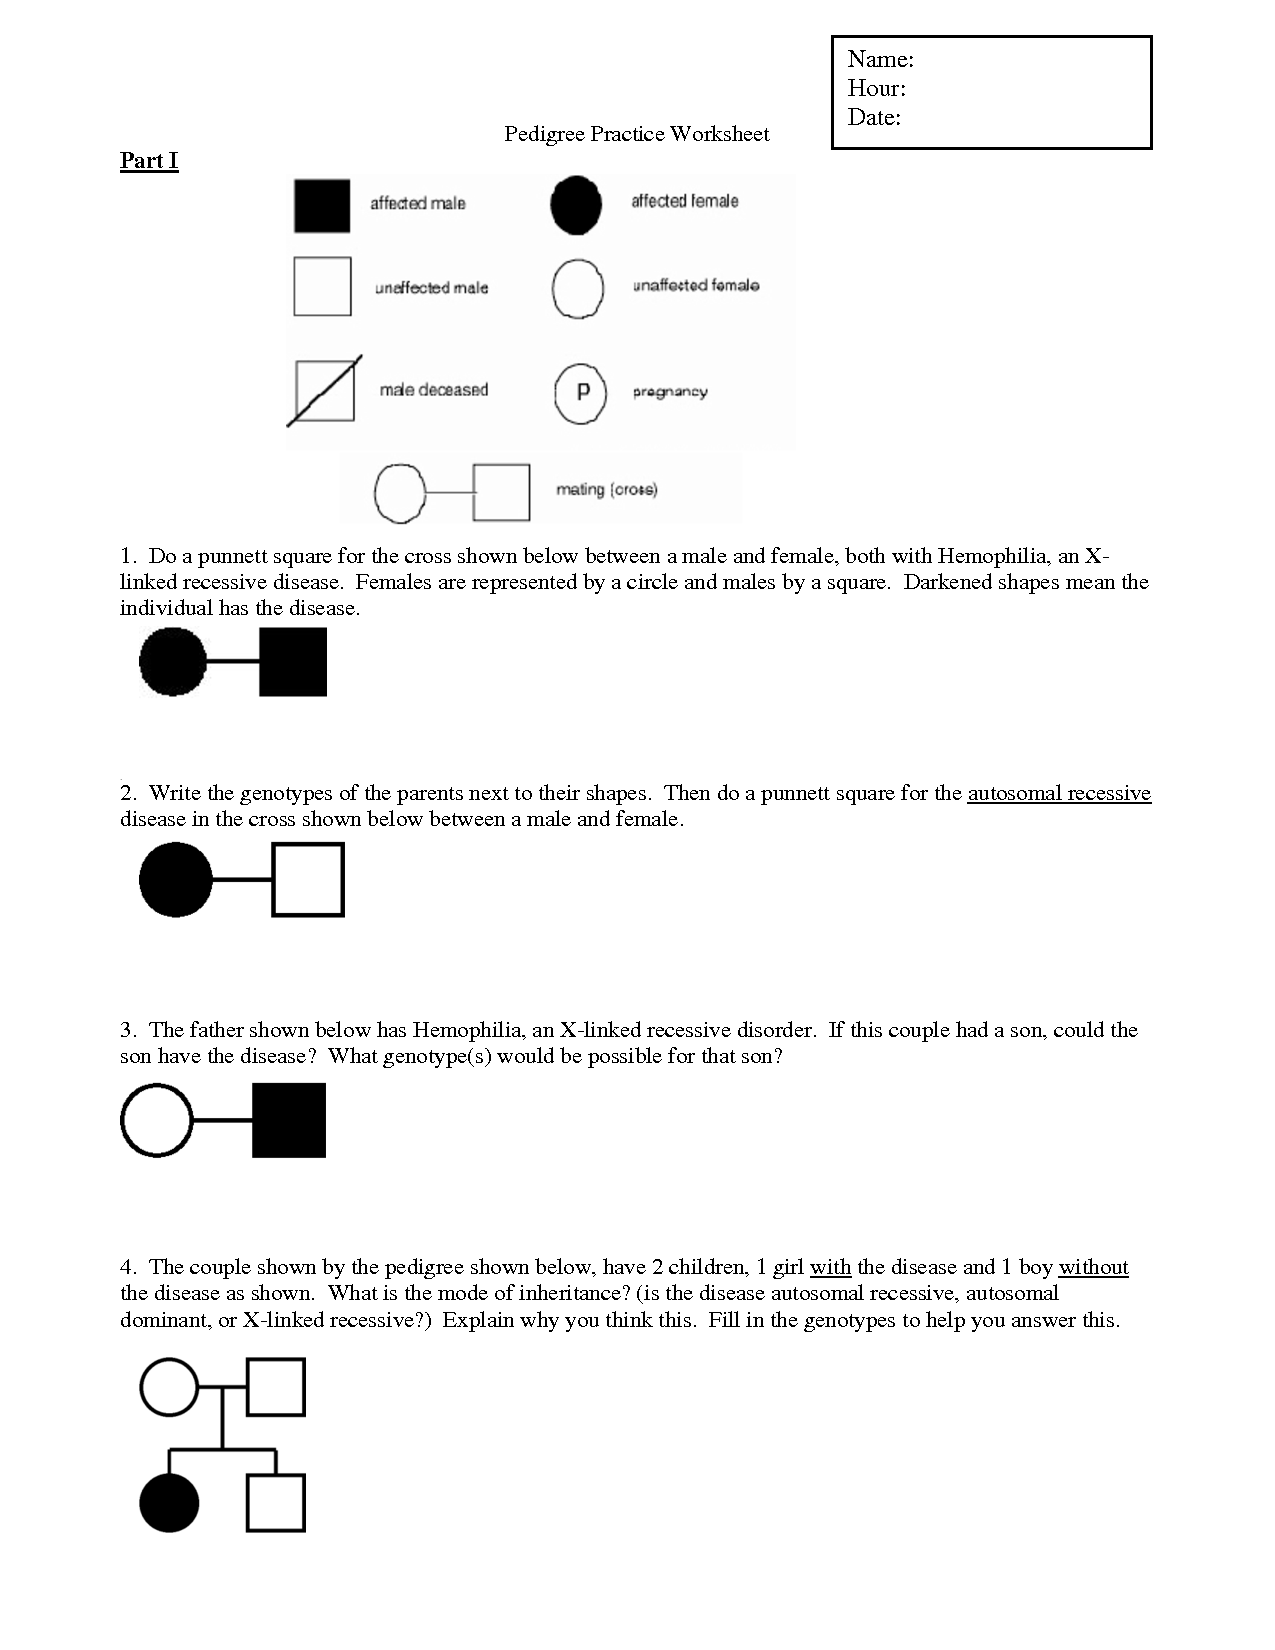 15 Best Images Of Pedigree Problem Worksheet Answers